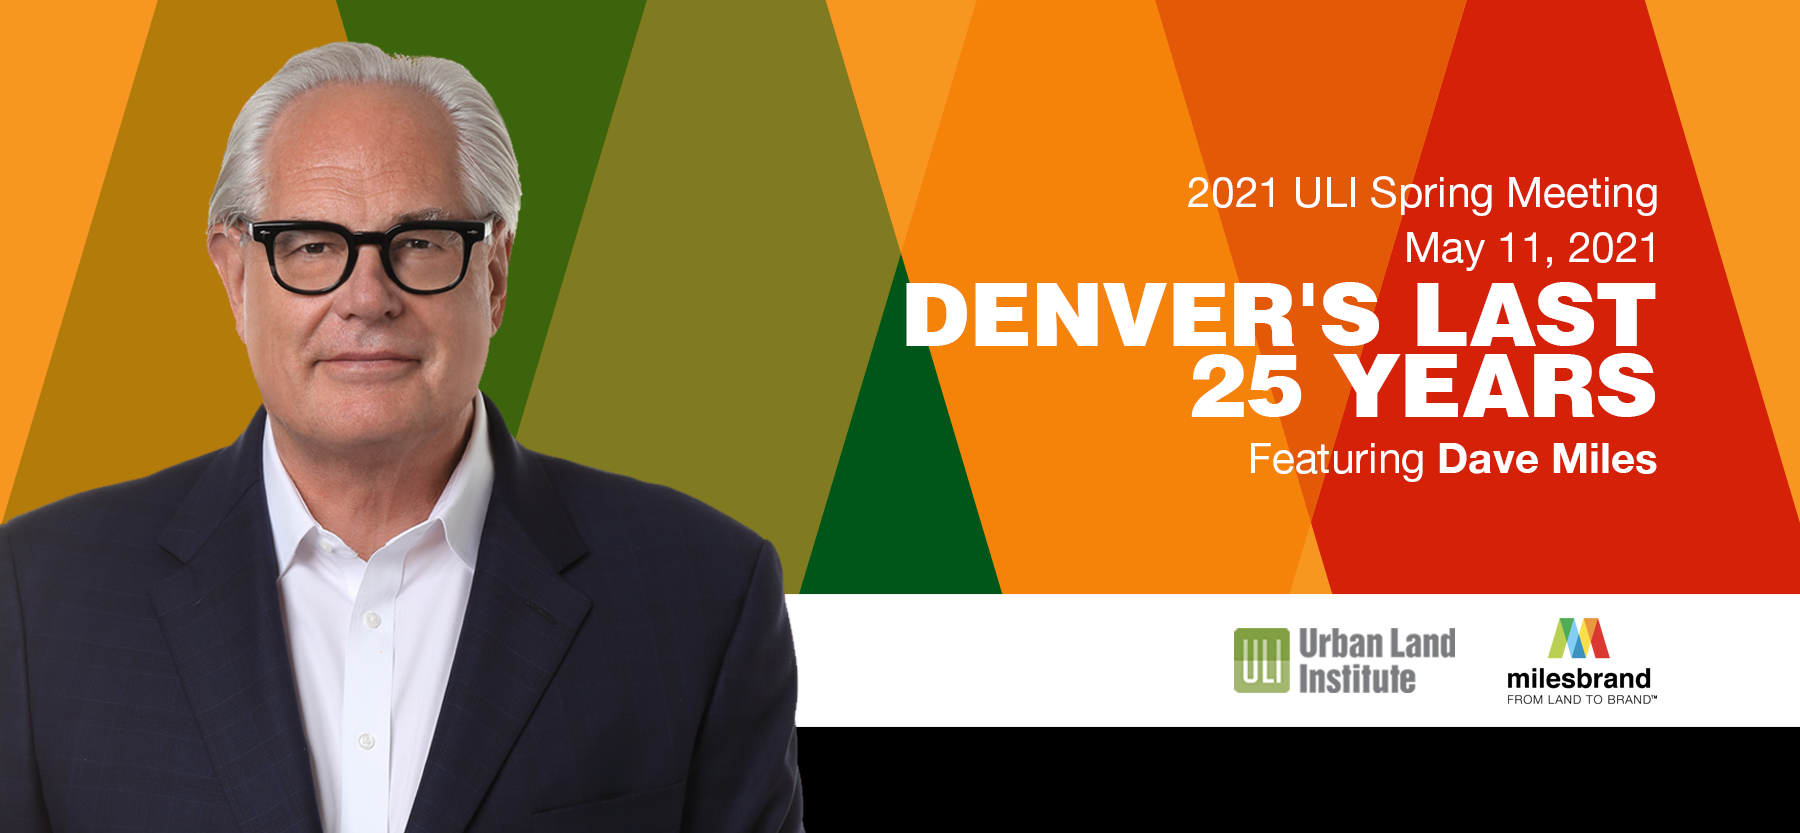 Join Milesbrand President Dave Miles at the 2021 ULI Spring Meeting